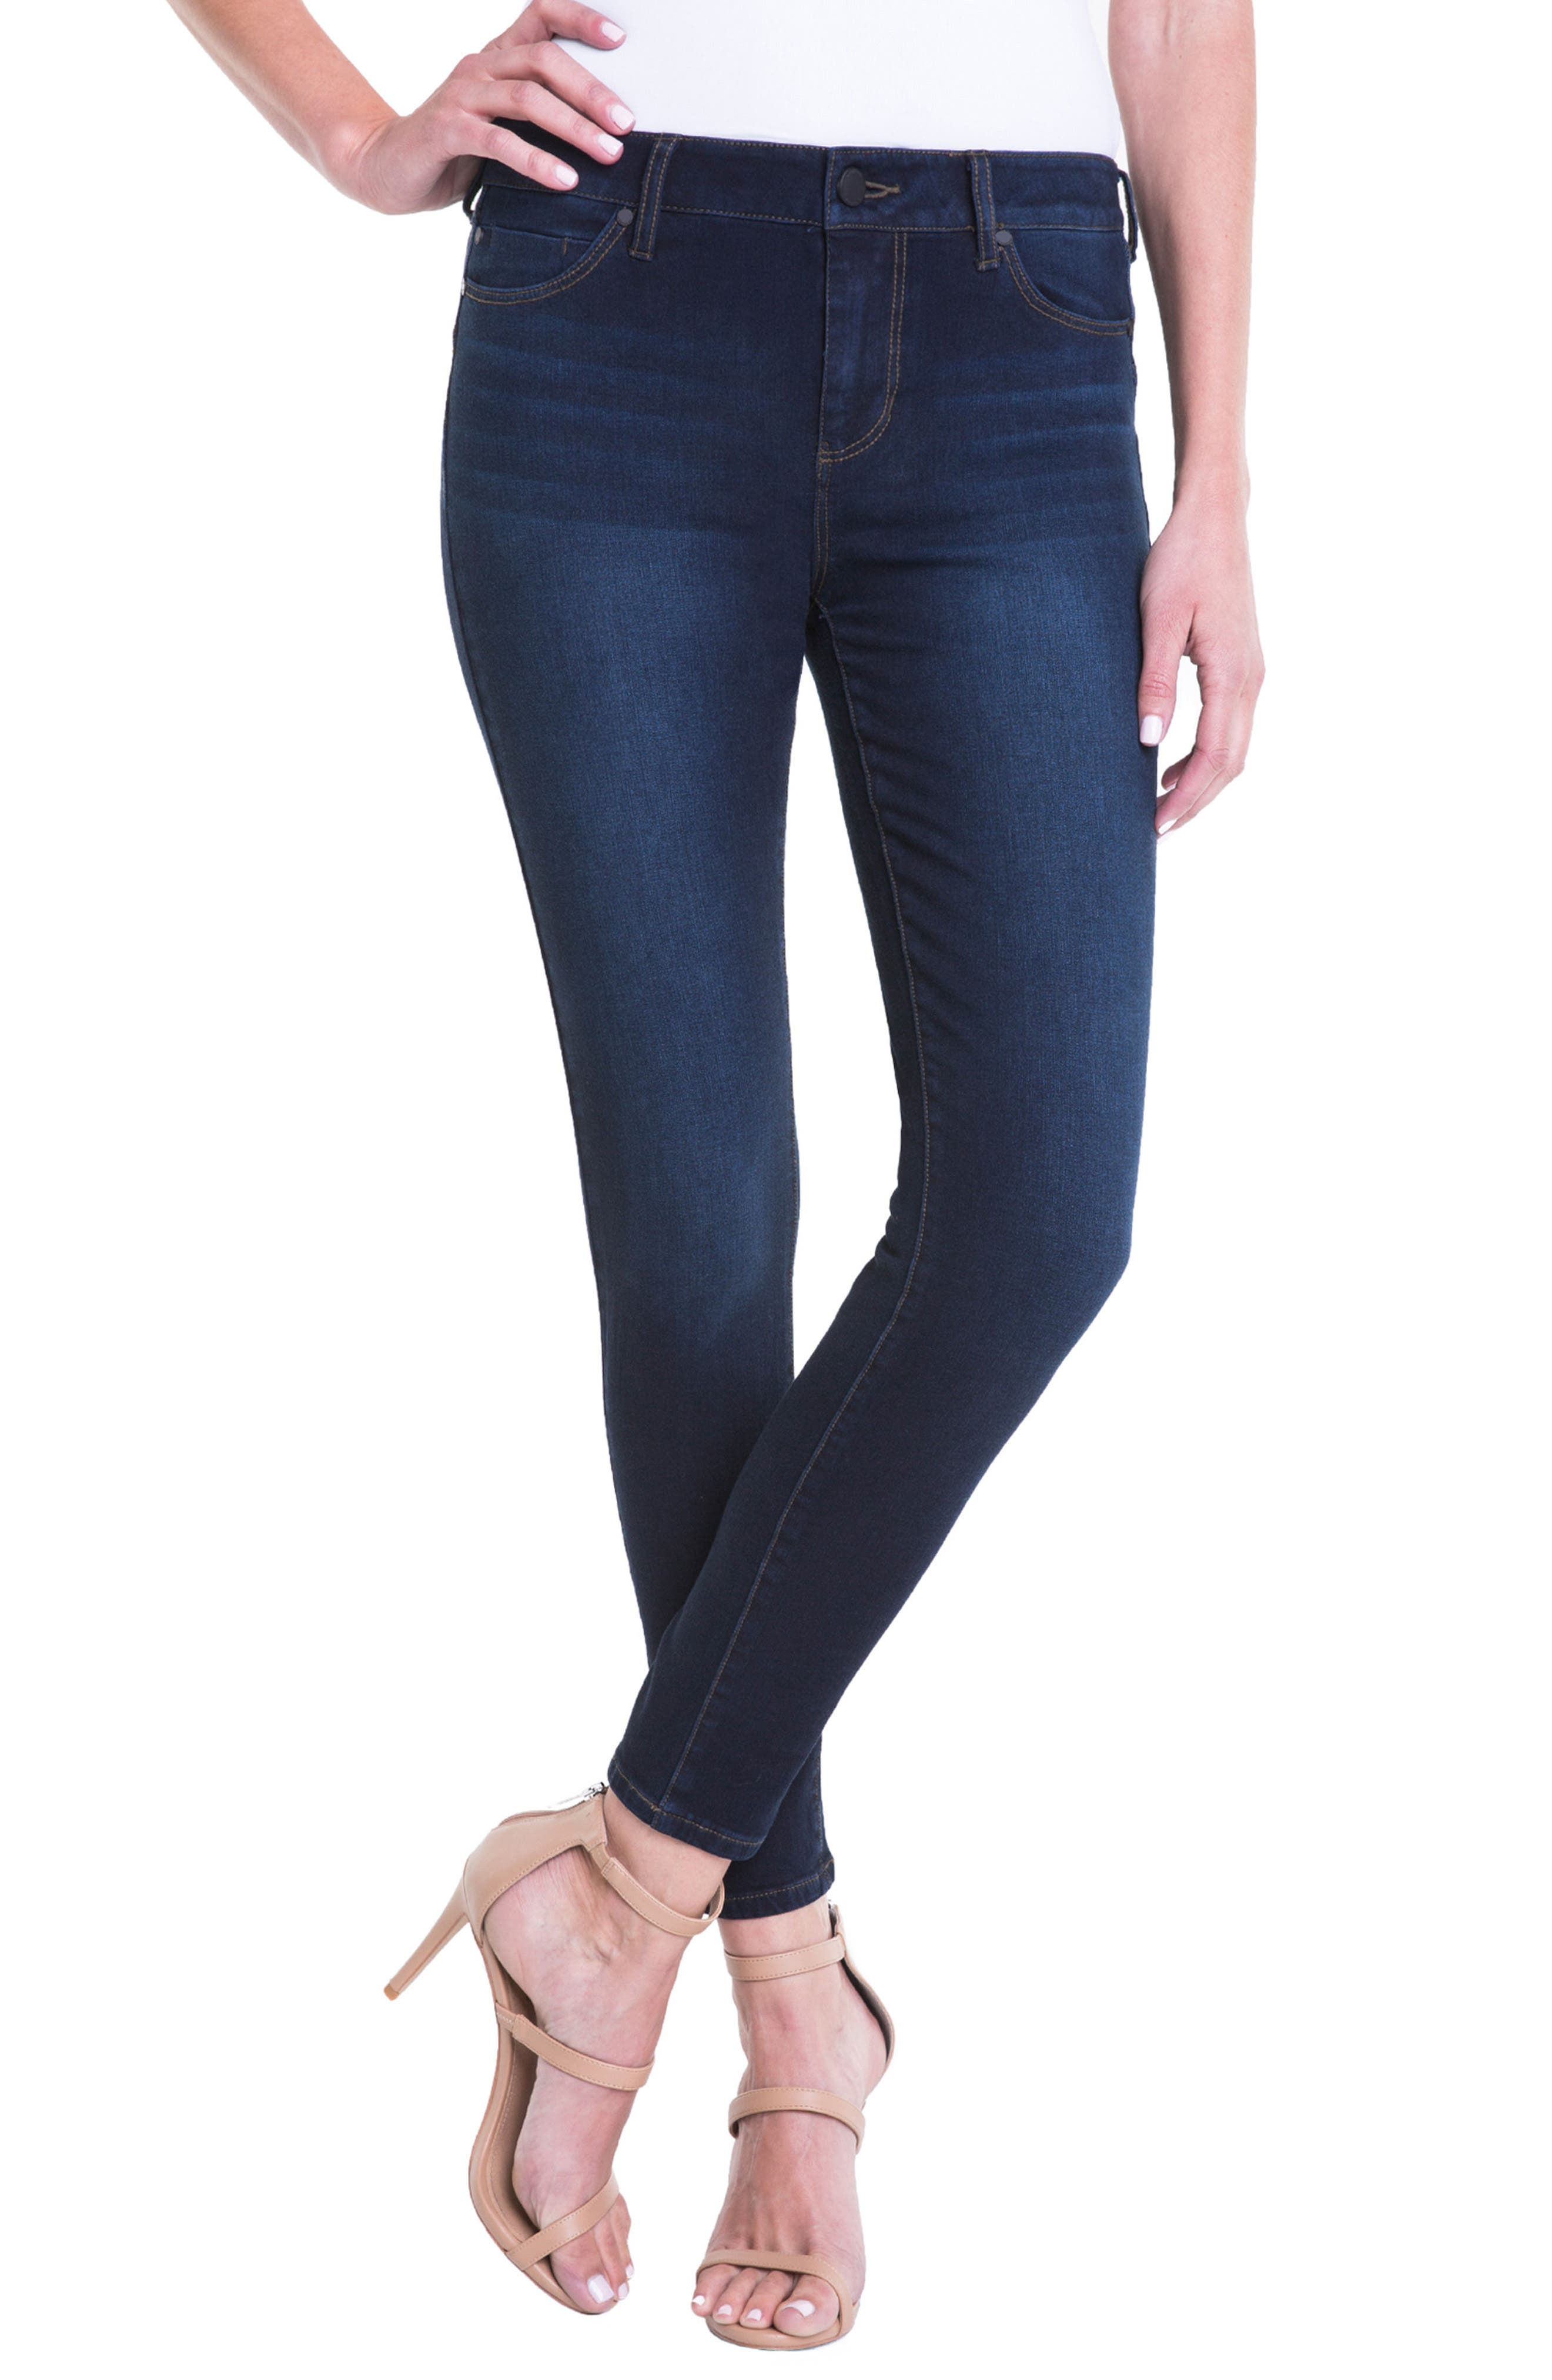 Jeans Company Piper Hugger Lift Sculpt Ankle Skinny Jeans,                             Alternate thumbnail 5, color,